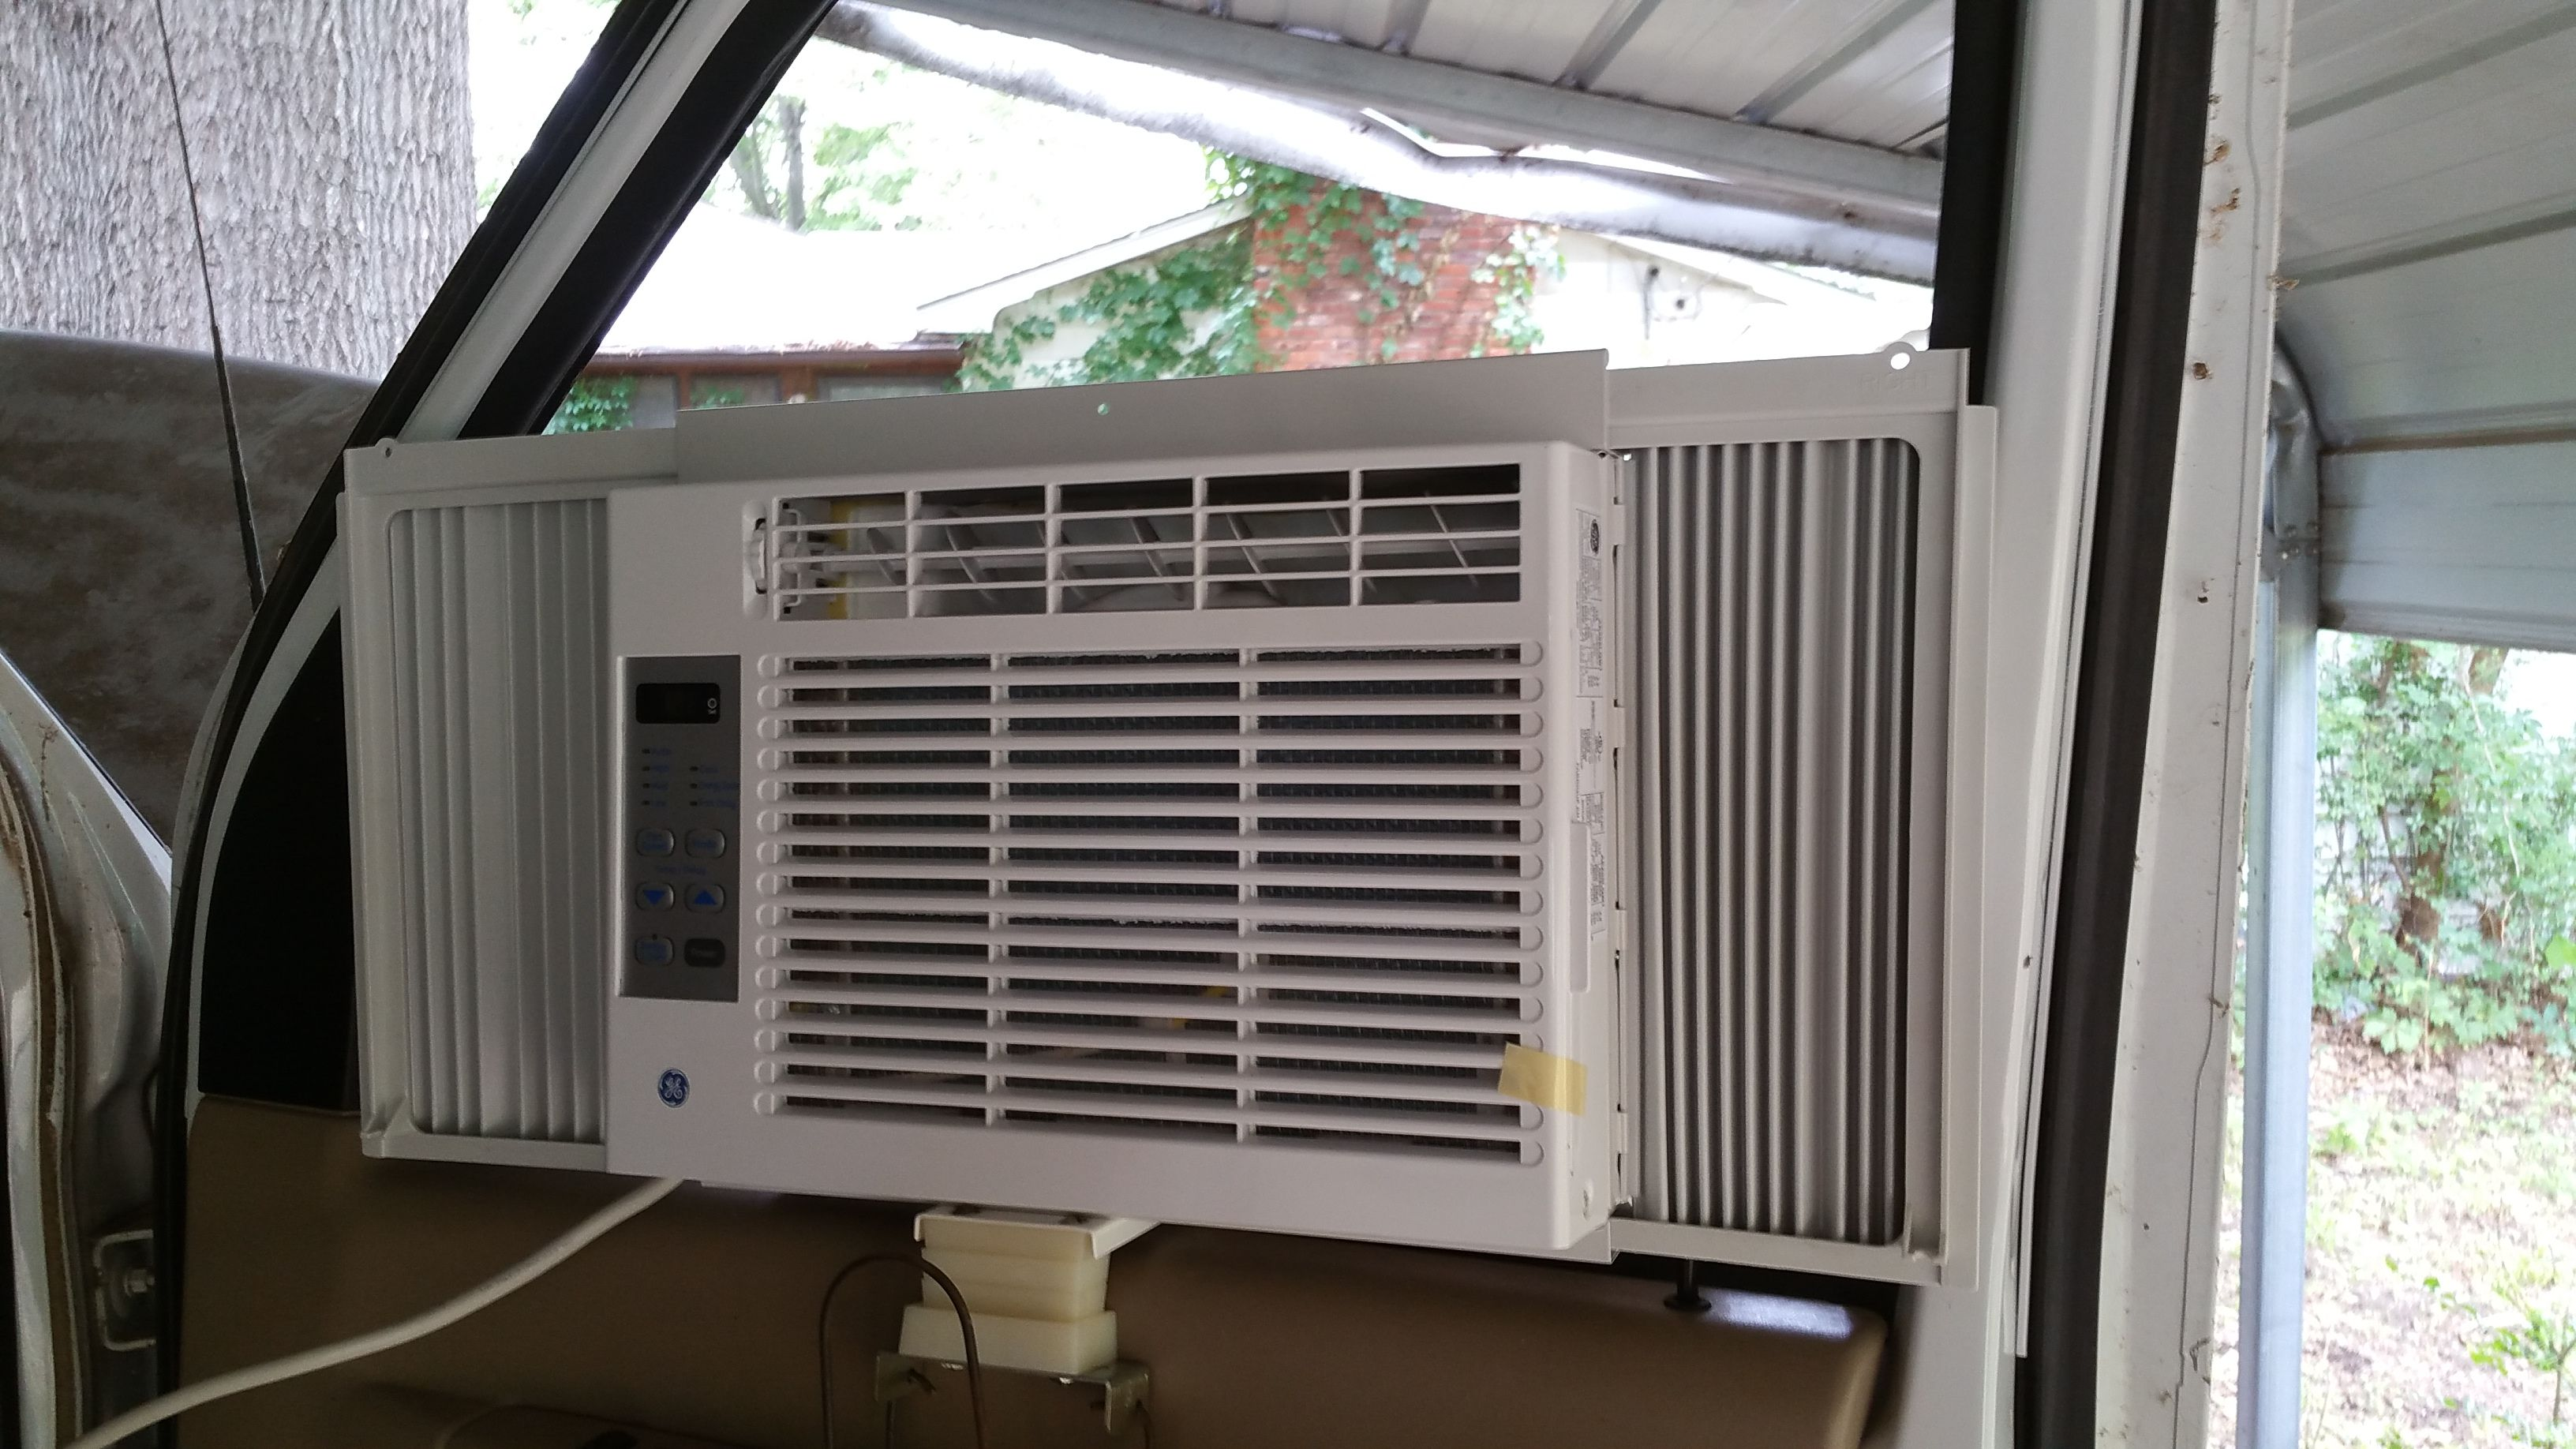 Installing a home window aC unit into a van that can be